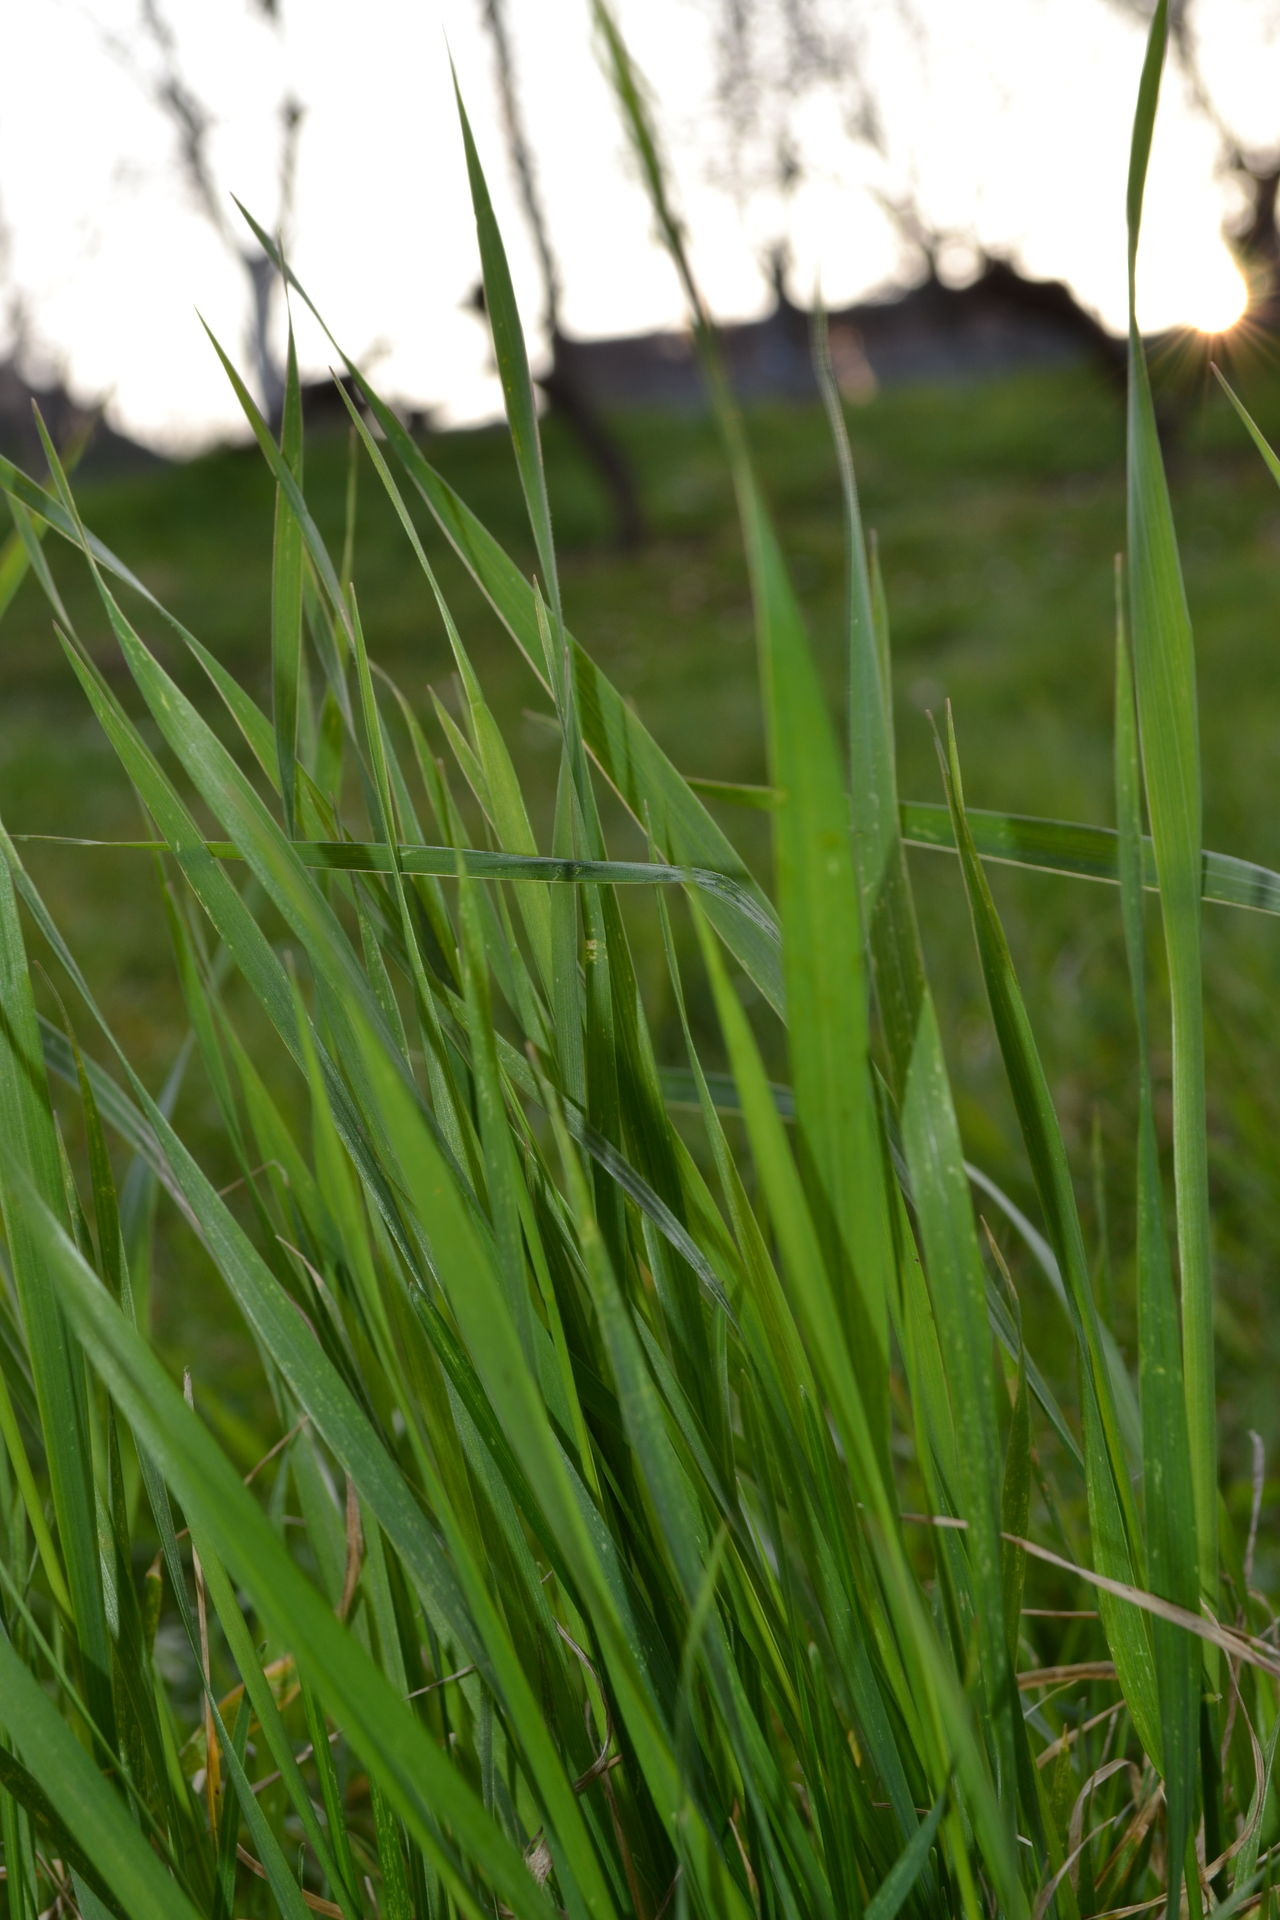 Growth Agriculture Nature Rural Scene Farm Close-up Green Color Cereal Plant Field Plant Outdoors No People Day Beauty In Nature Sun Beauty In Nature Plant Nature Relaxation Time To Relax Grass Grass Area Grassy Grass Photography Grassfield